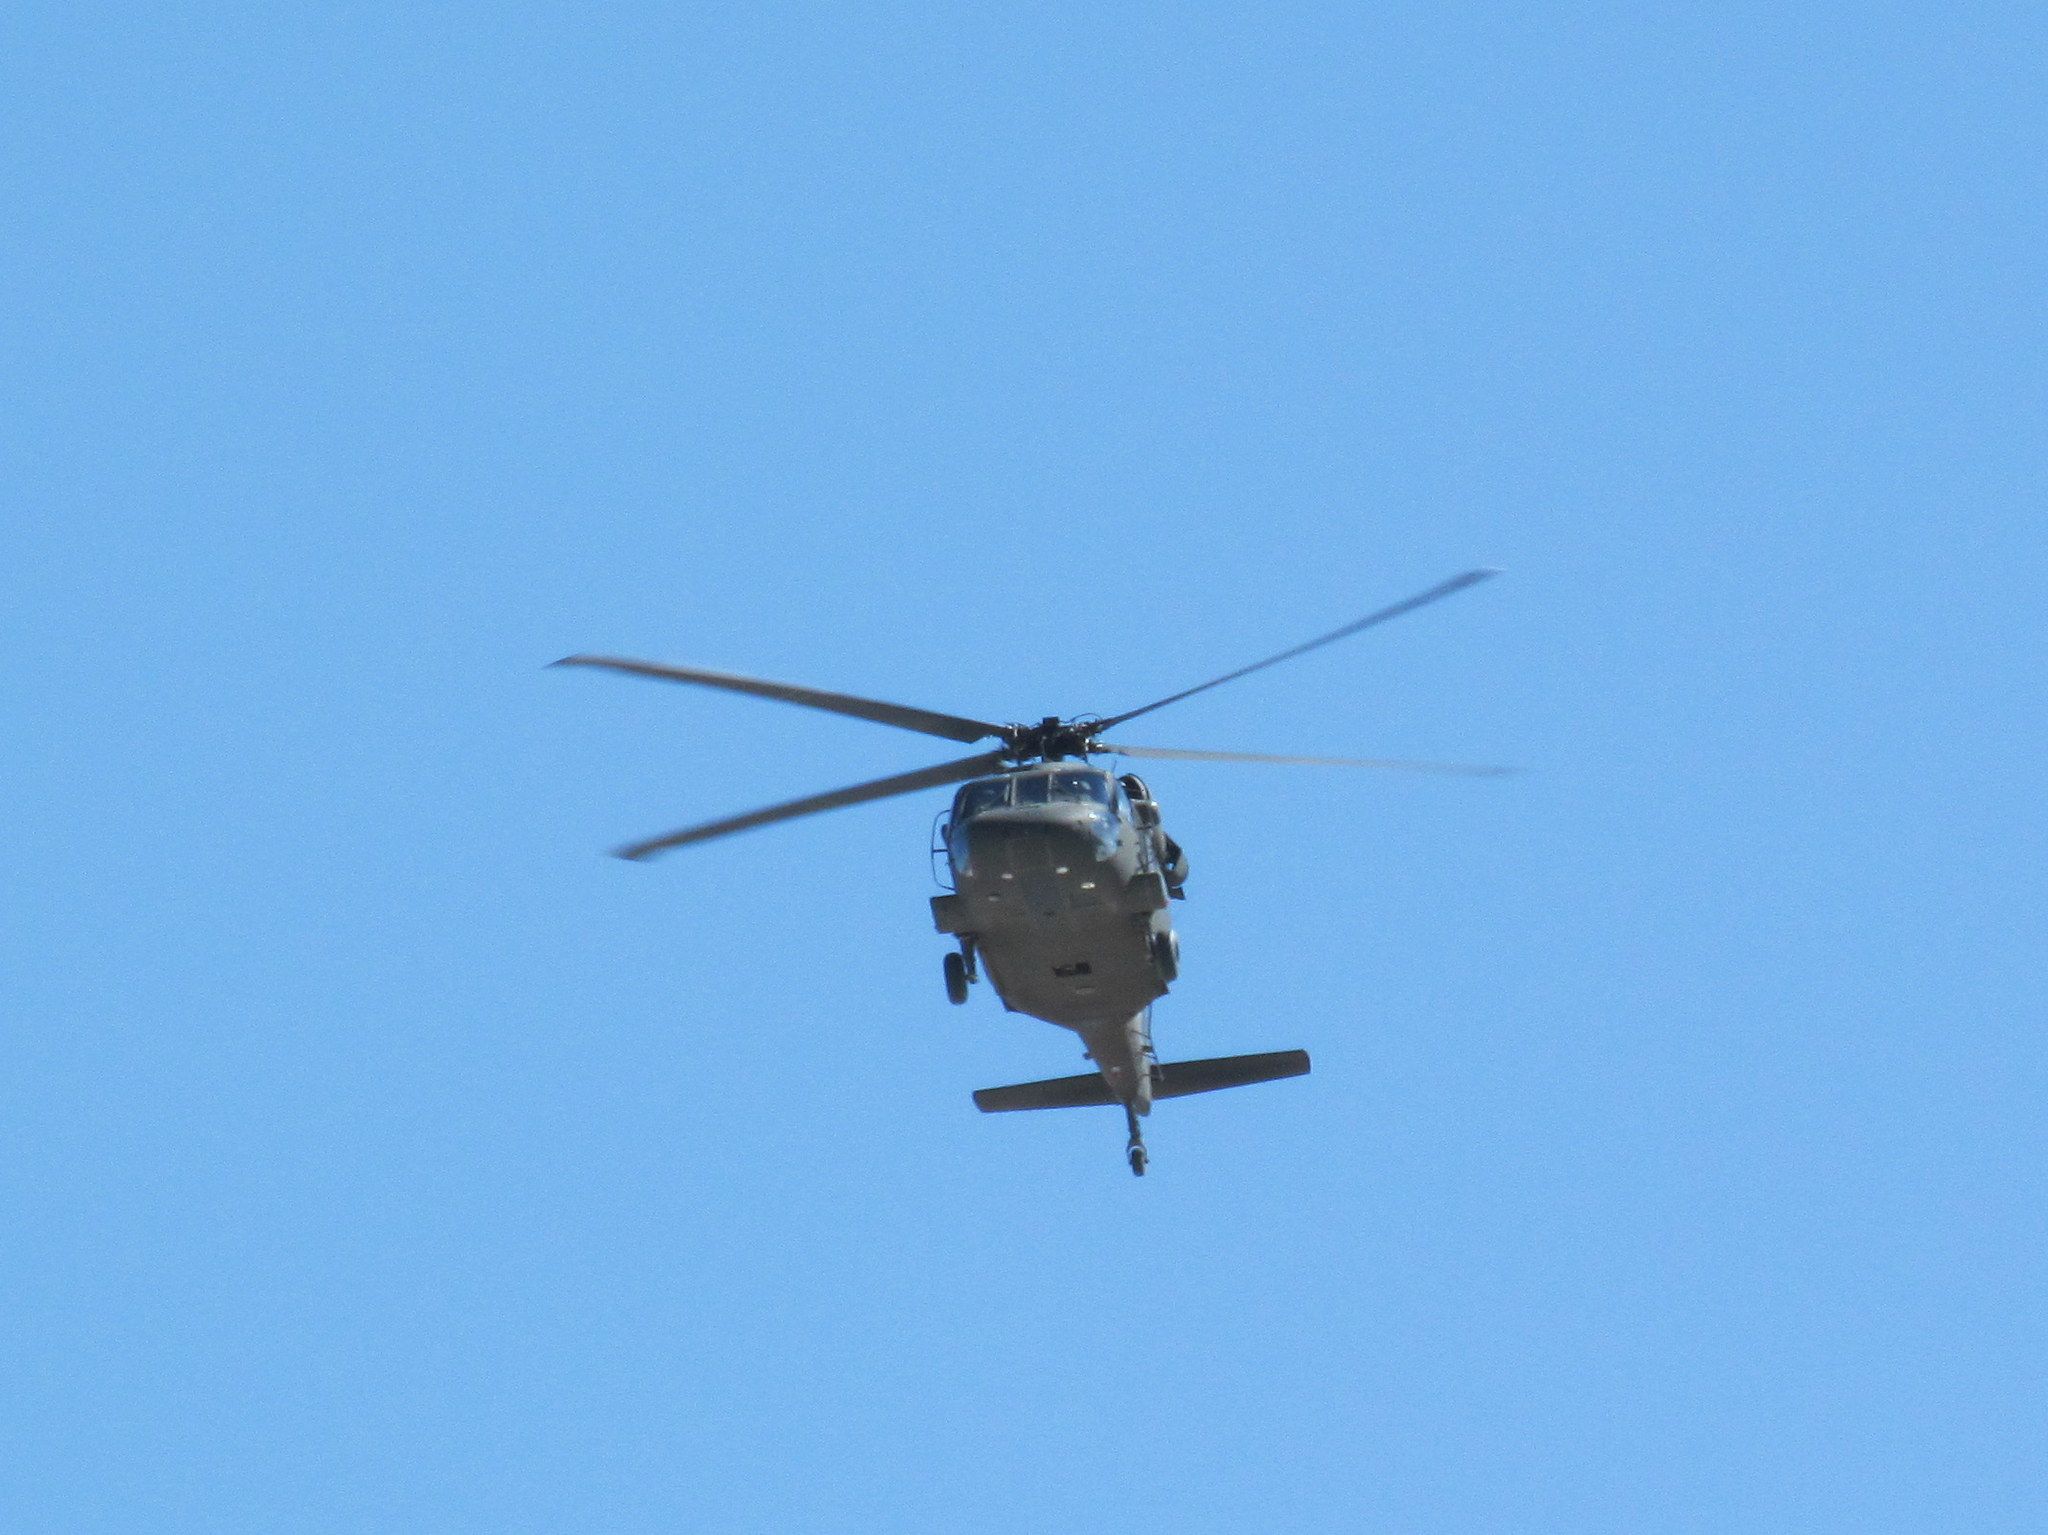 Photo: Military heli flying low over the wilderness